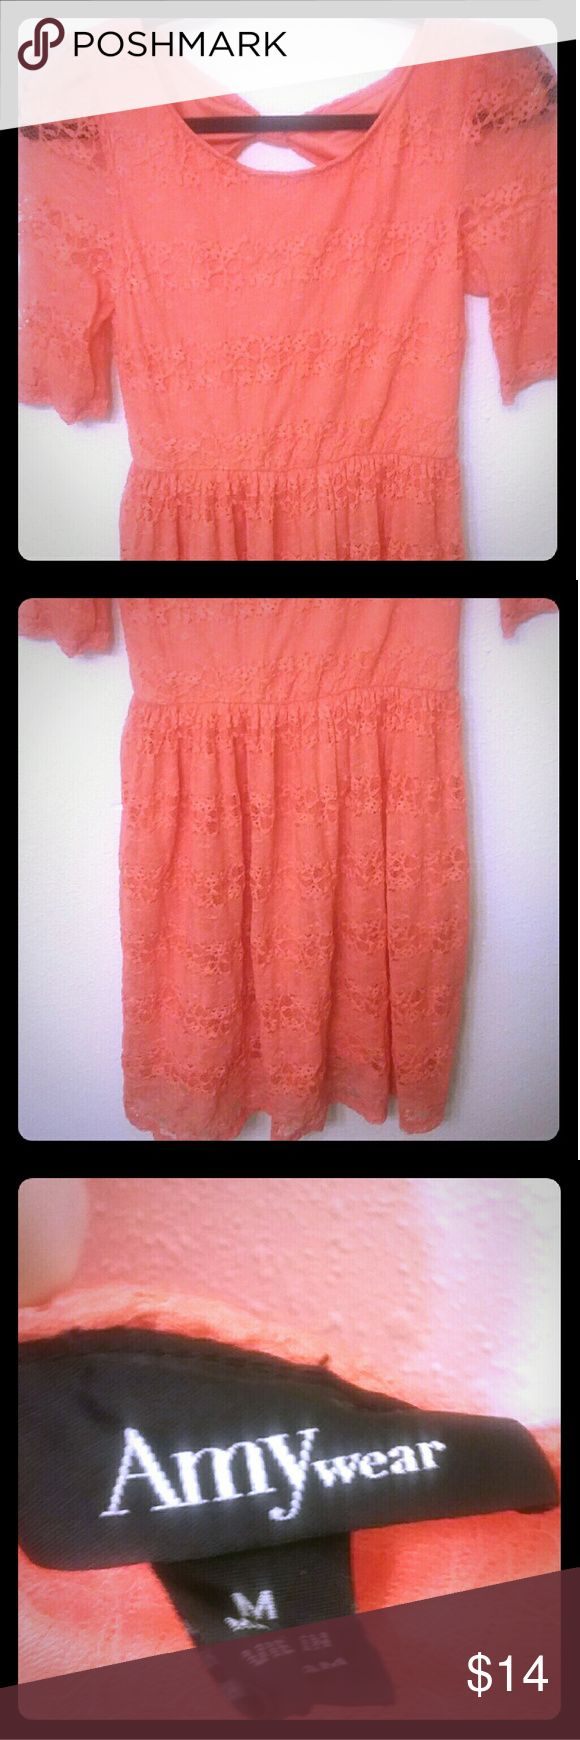 Amy Wear neon coral lace dress Amy Wear neon coral lace dress. Back has cutout with a bow. All lace overlay, gently used. No snags, stains, or holes. Dresses Mini